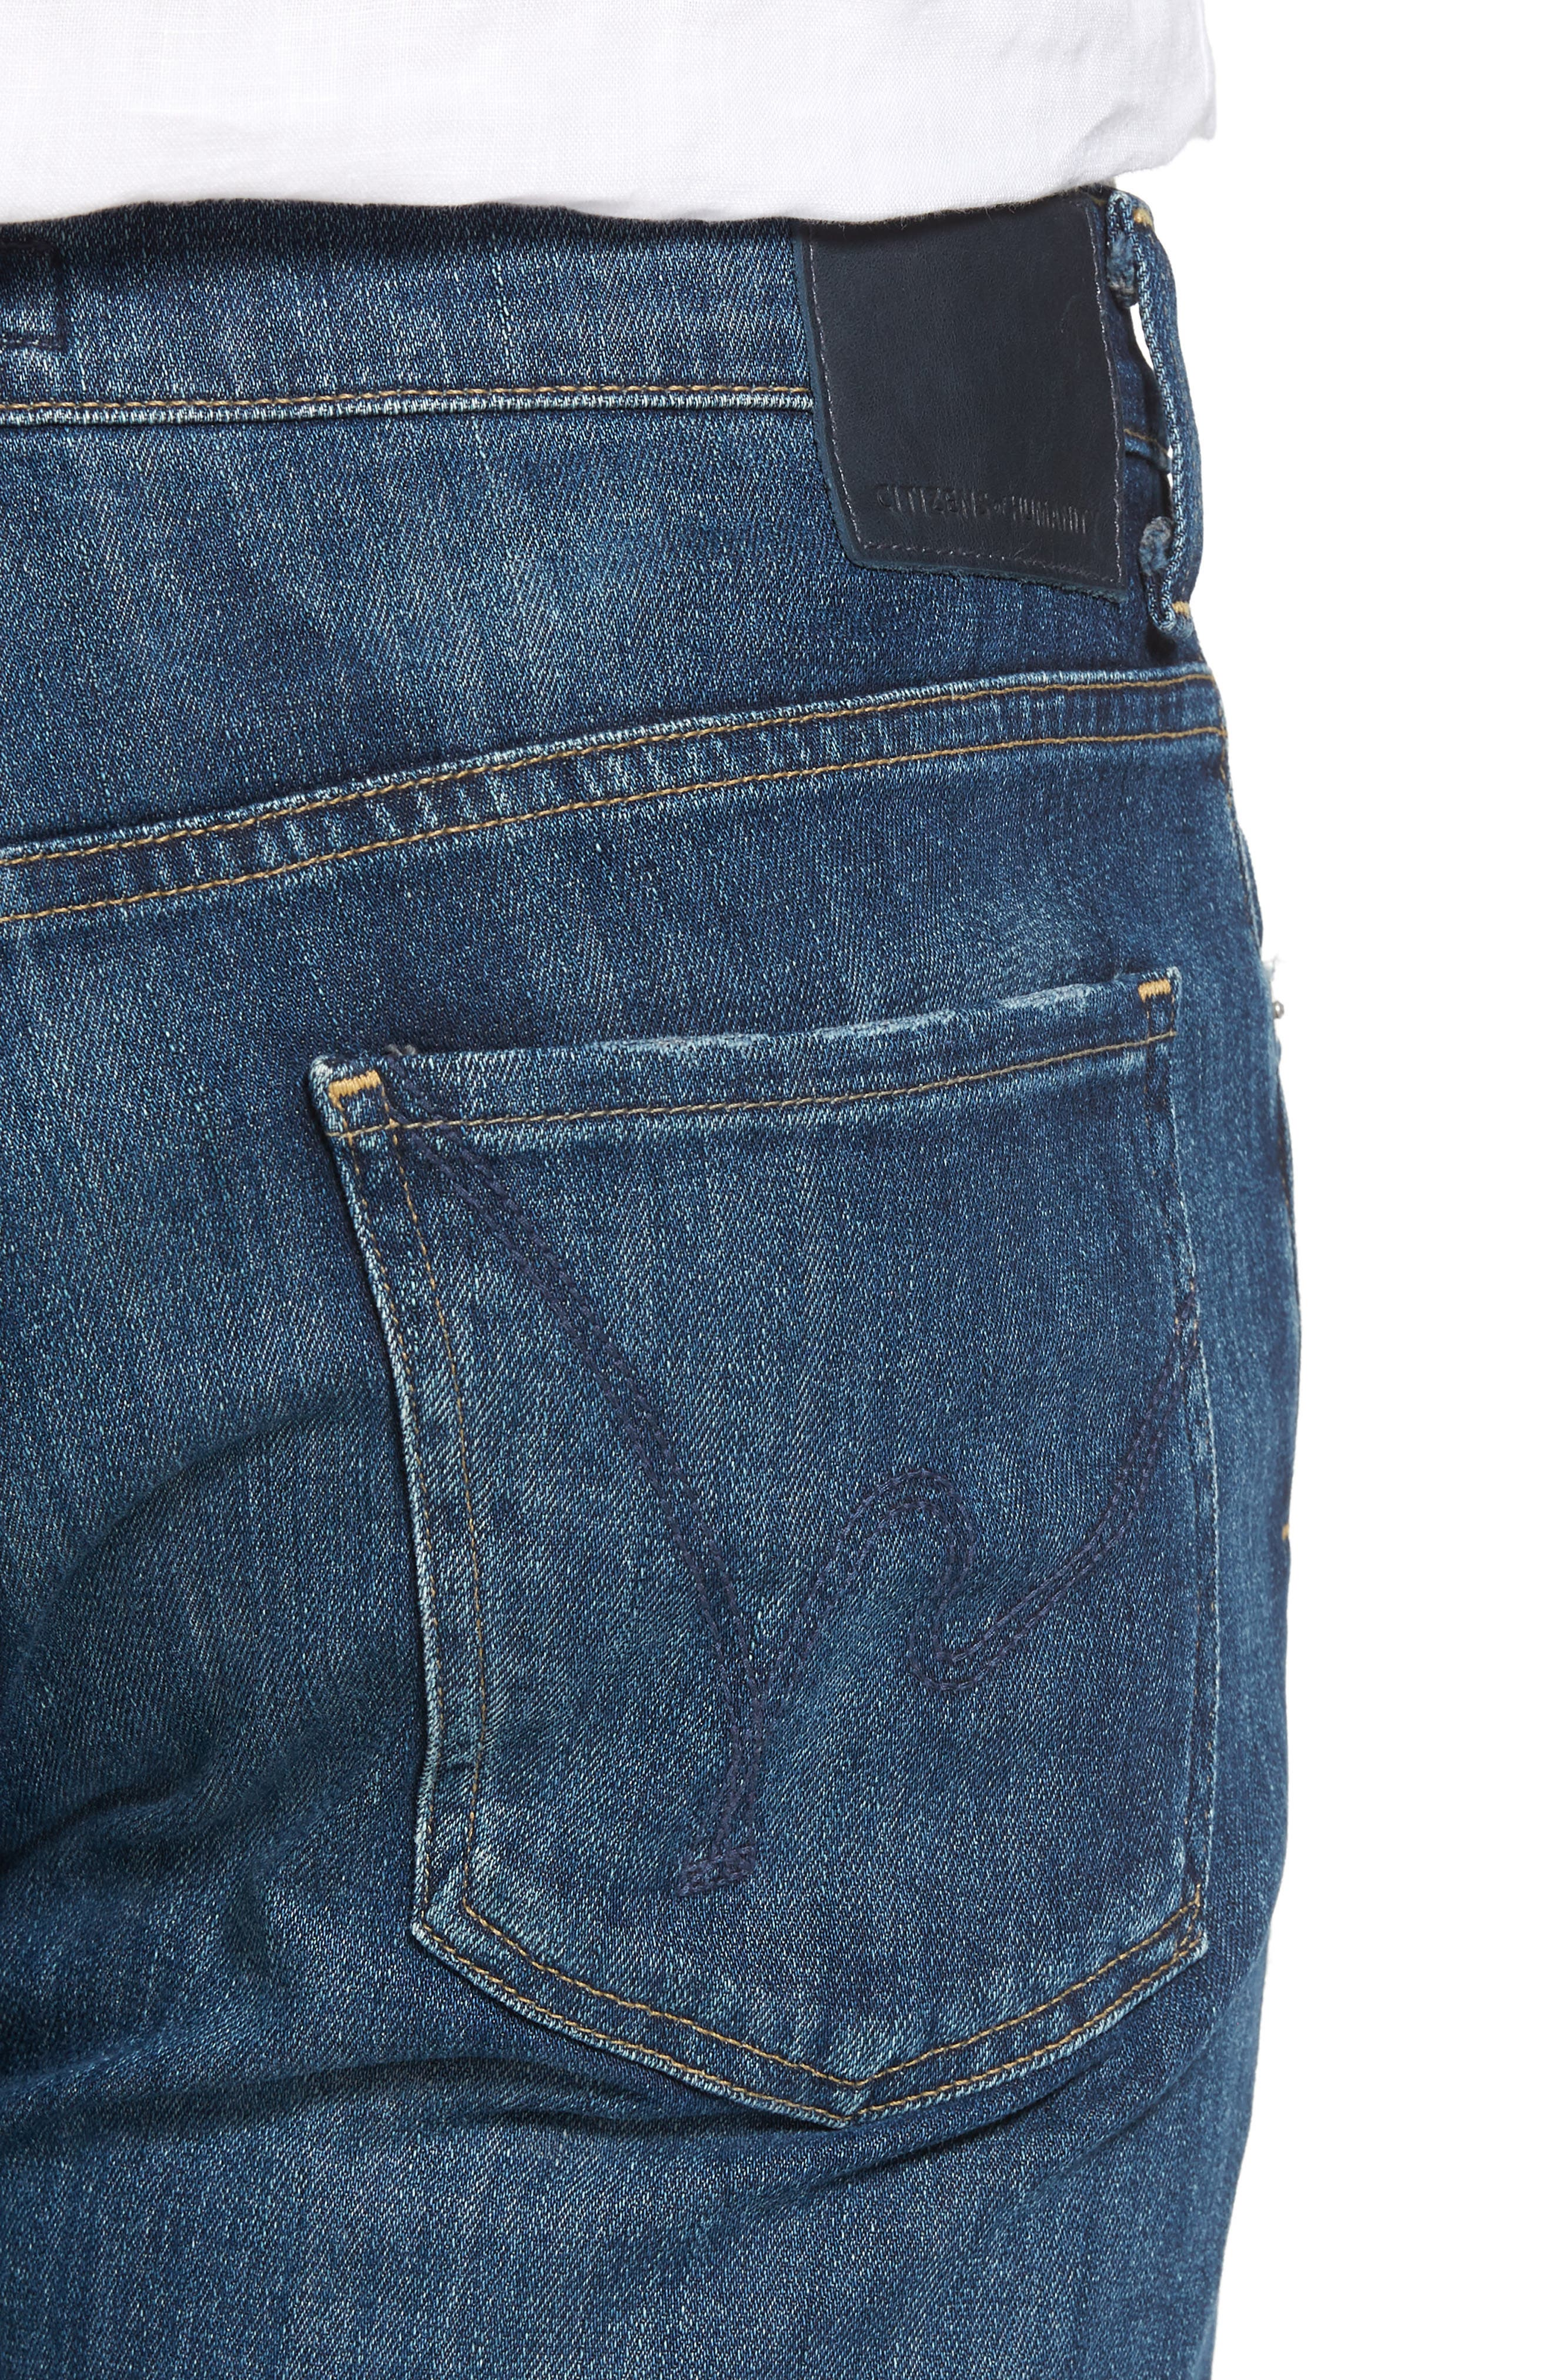 Sid Straight Leg Jeans,                             Alternate thumbnail 4, color,                             Adler